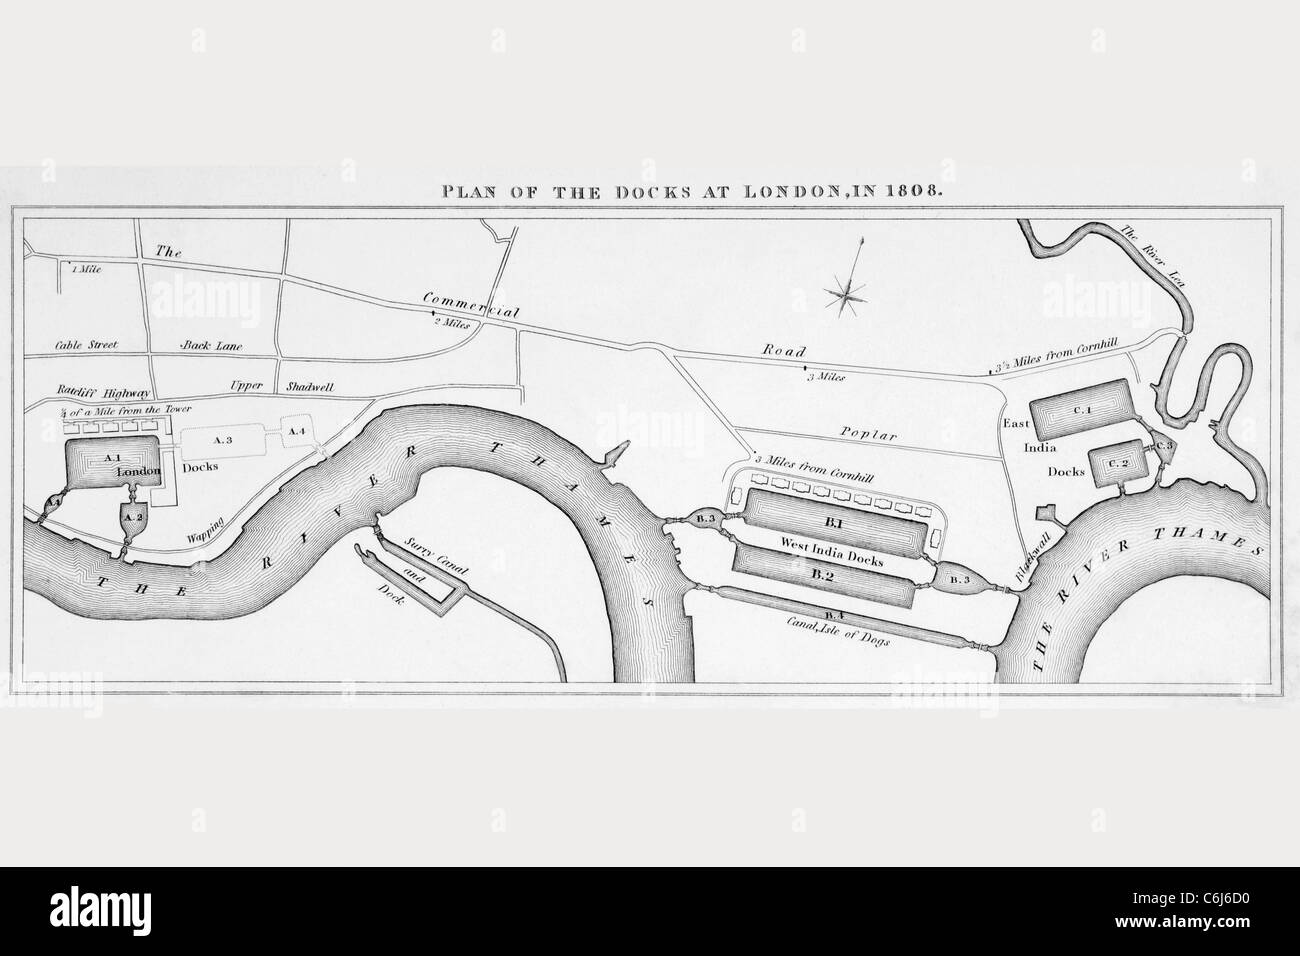 Plan of London docks as they were in 1808. - Stock Image